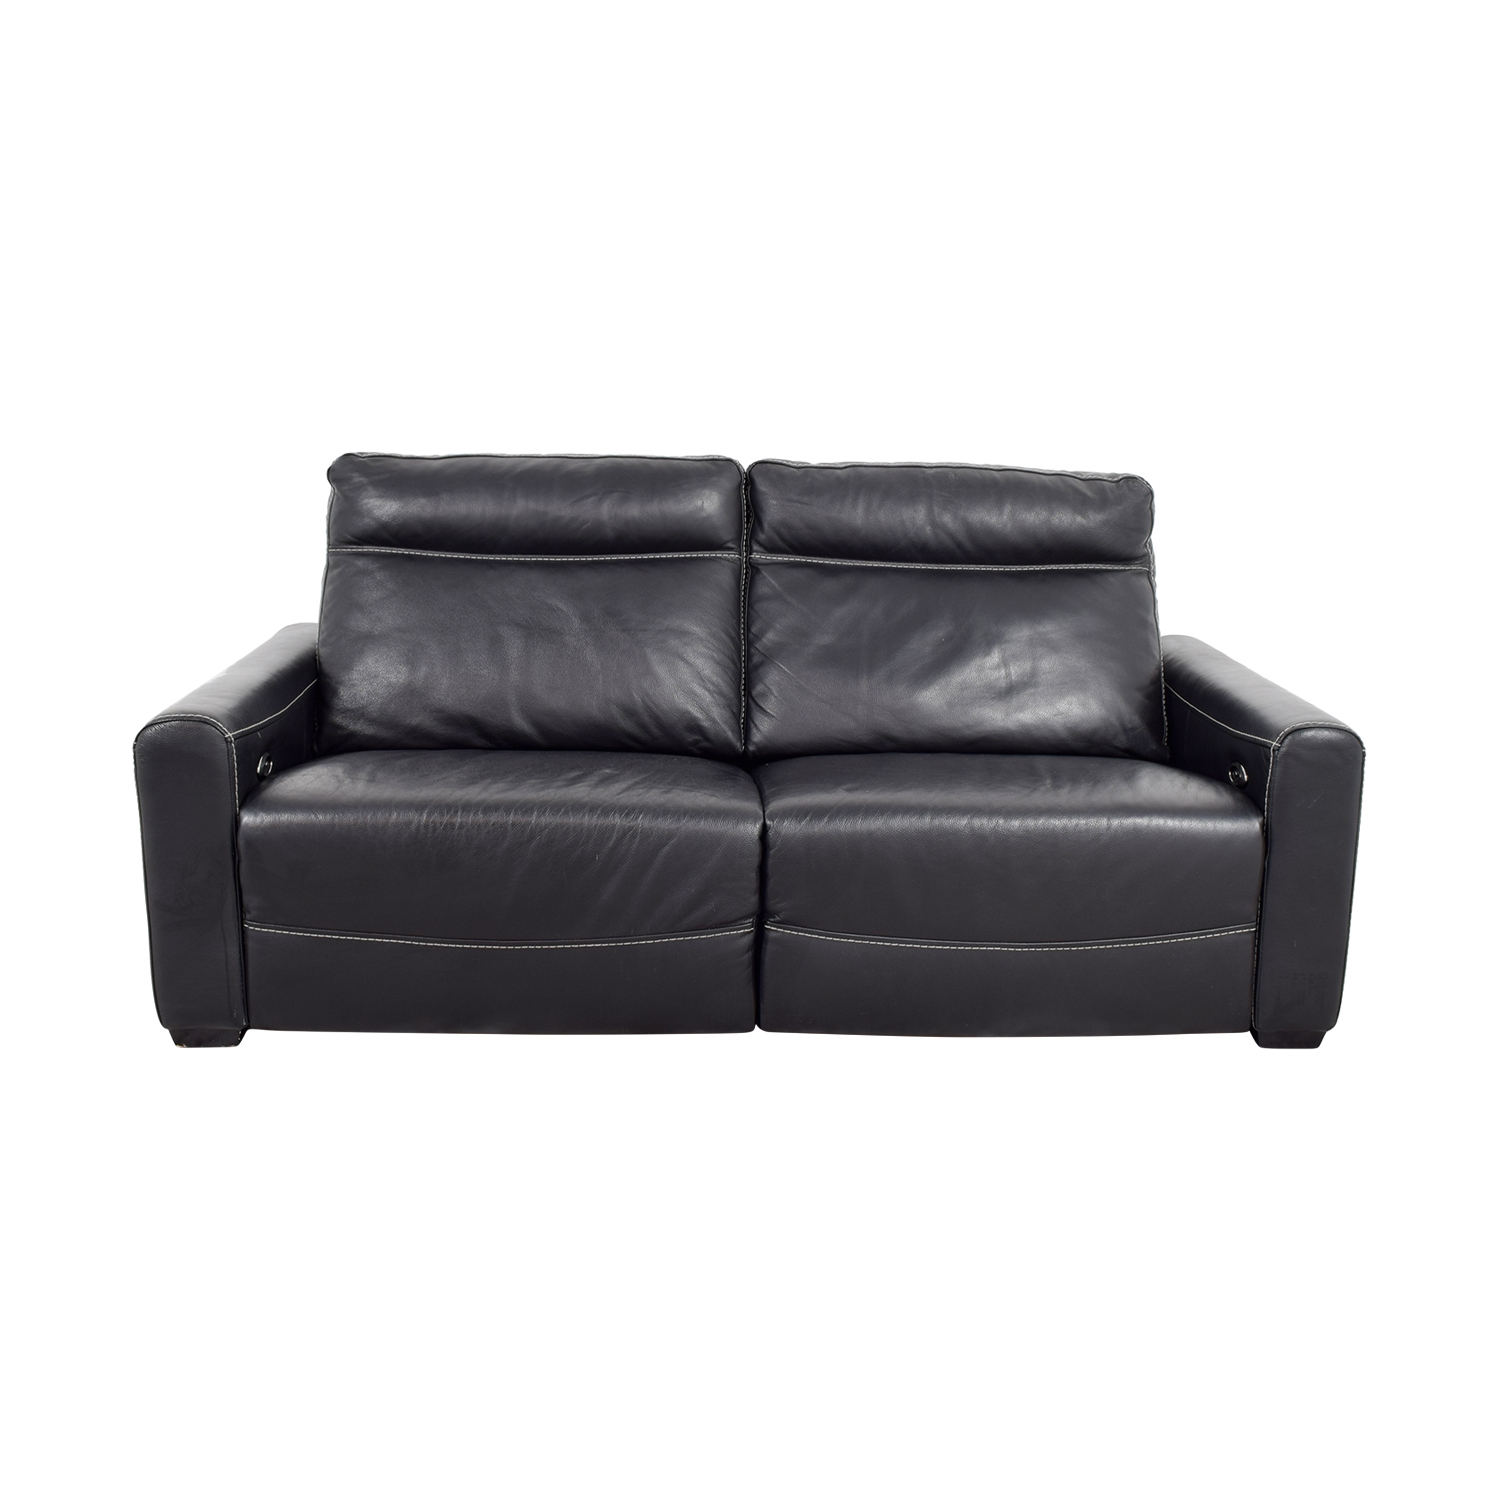 Black Leather Recliner Sofa Impressive Black Leather